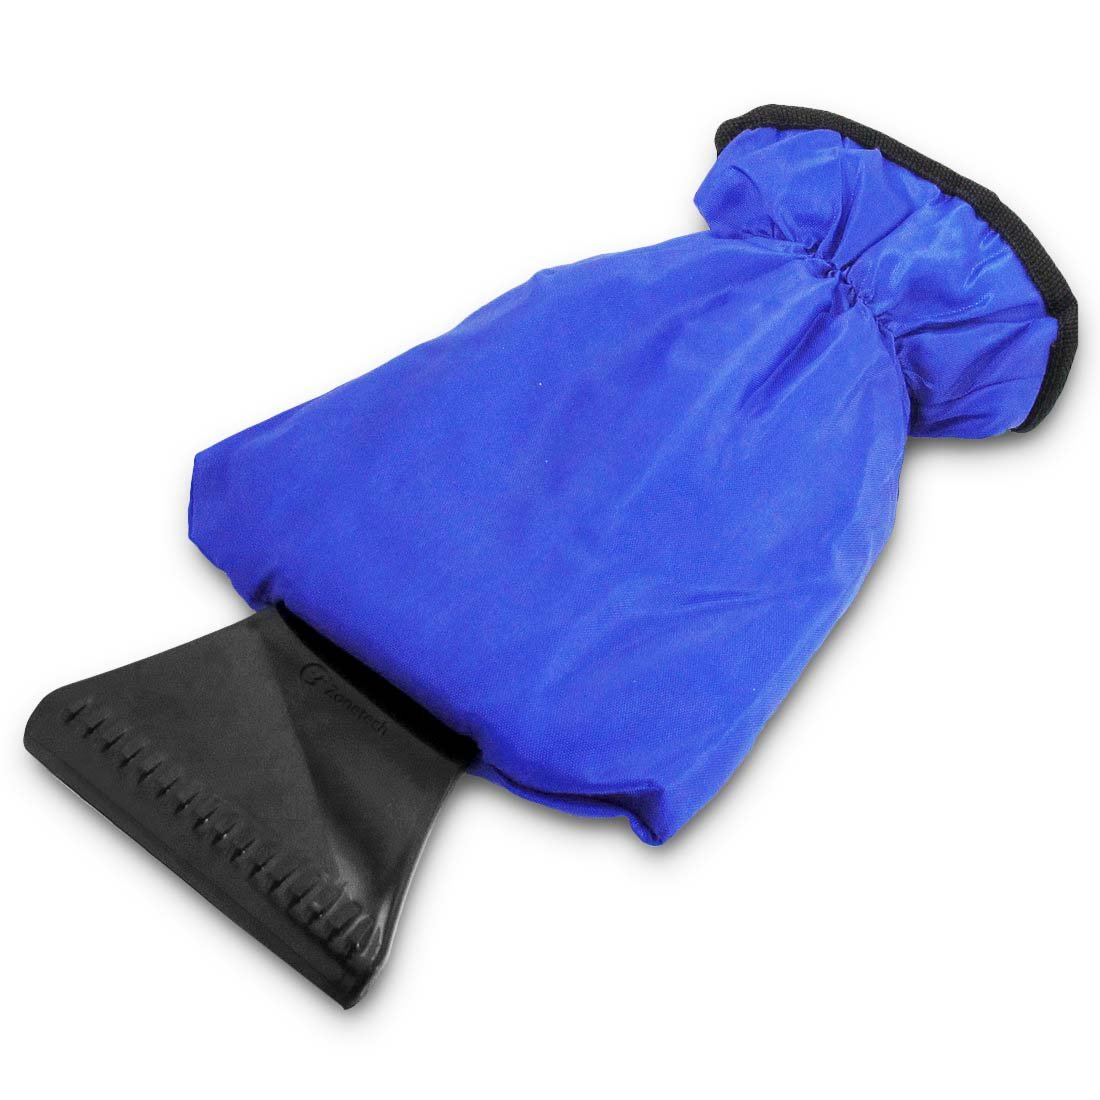 Blue Zone Tech Car Ice Scraper Mitt for Windshield Waterproof Snow Scraper with Lined Fleece Glove Removable